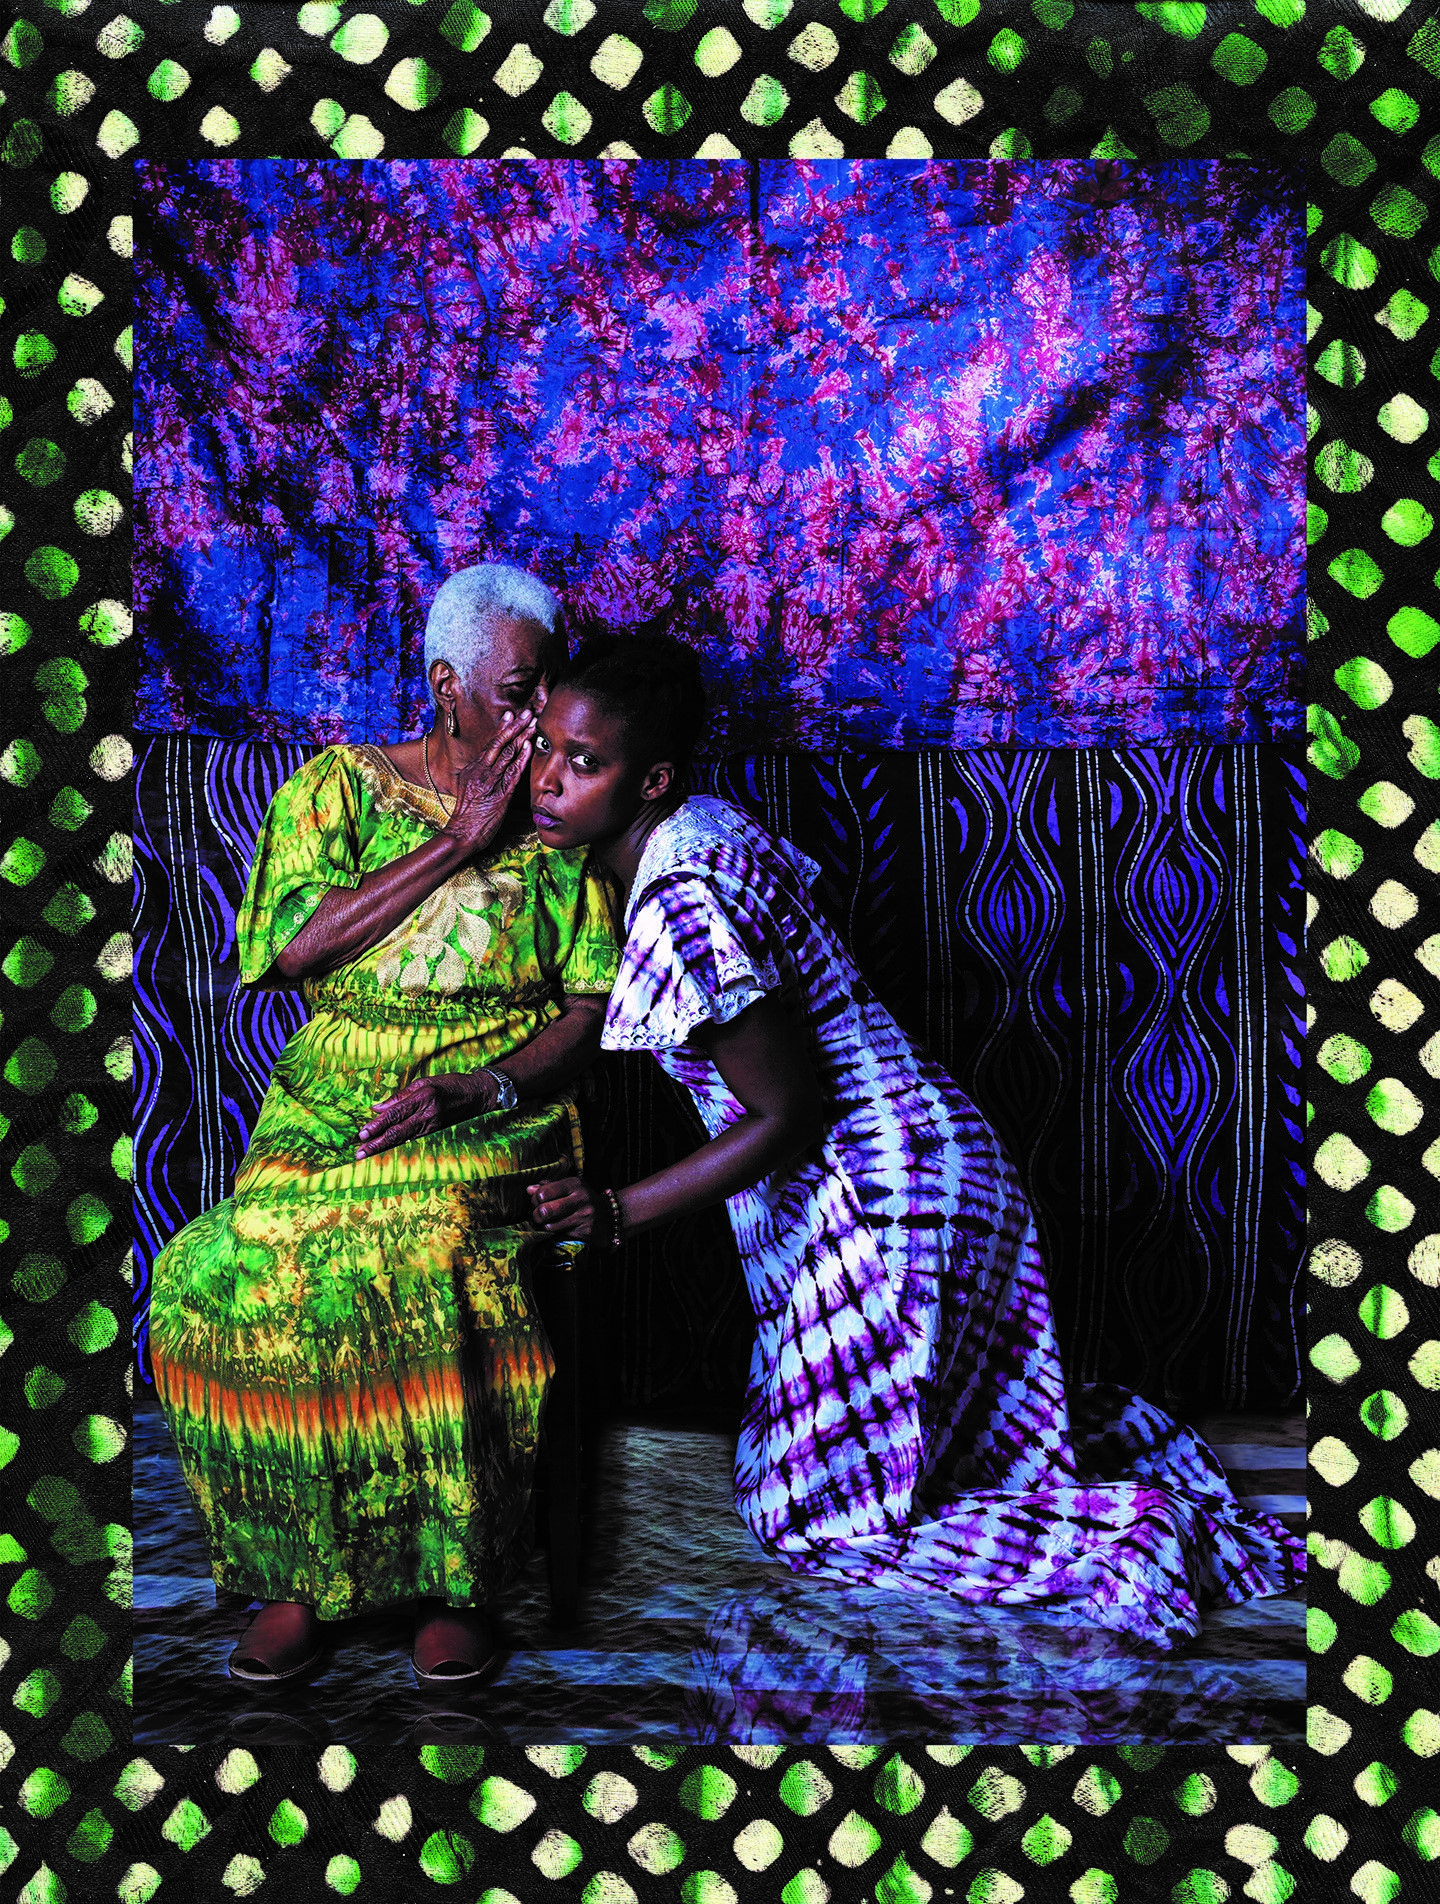 """Adama Delphine Fawundu, """"Passageways #1, Secrets, Traditions, Spoken and Unspoken Truths or Not"""", 2017. Courtesy of the Moody Center for the Arts"""